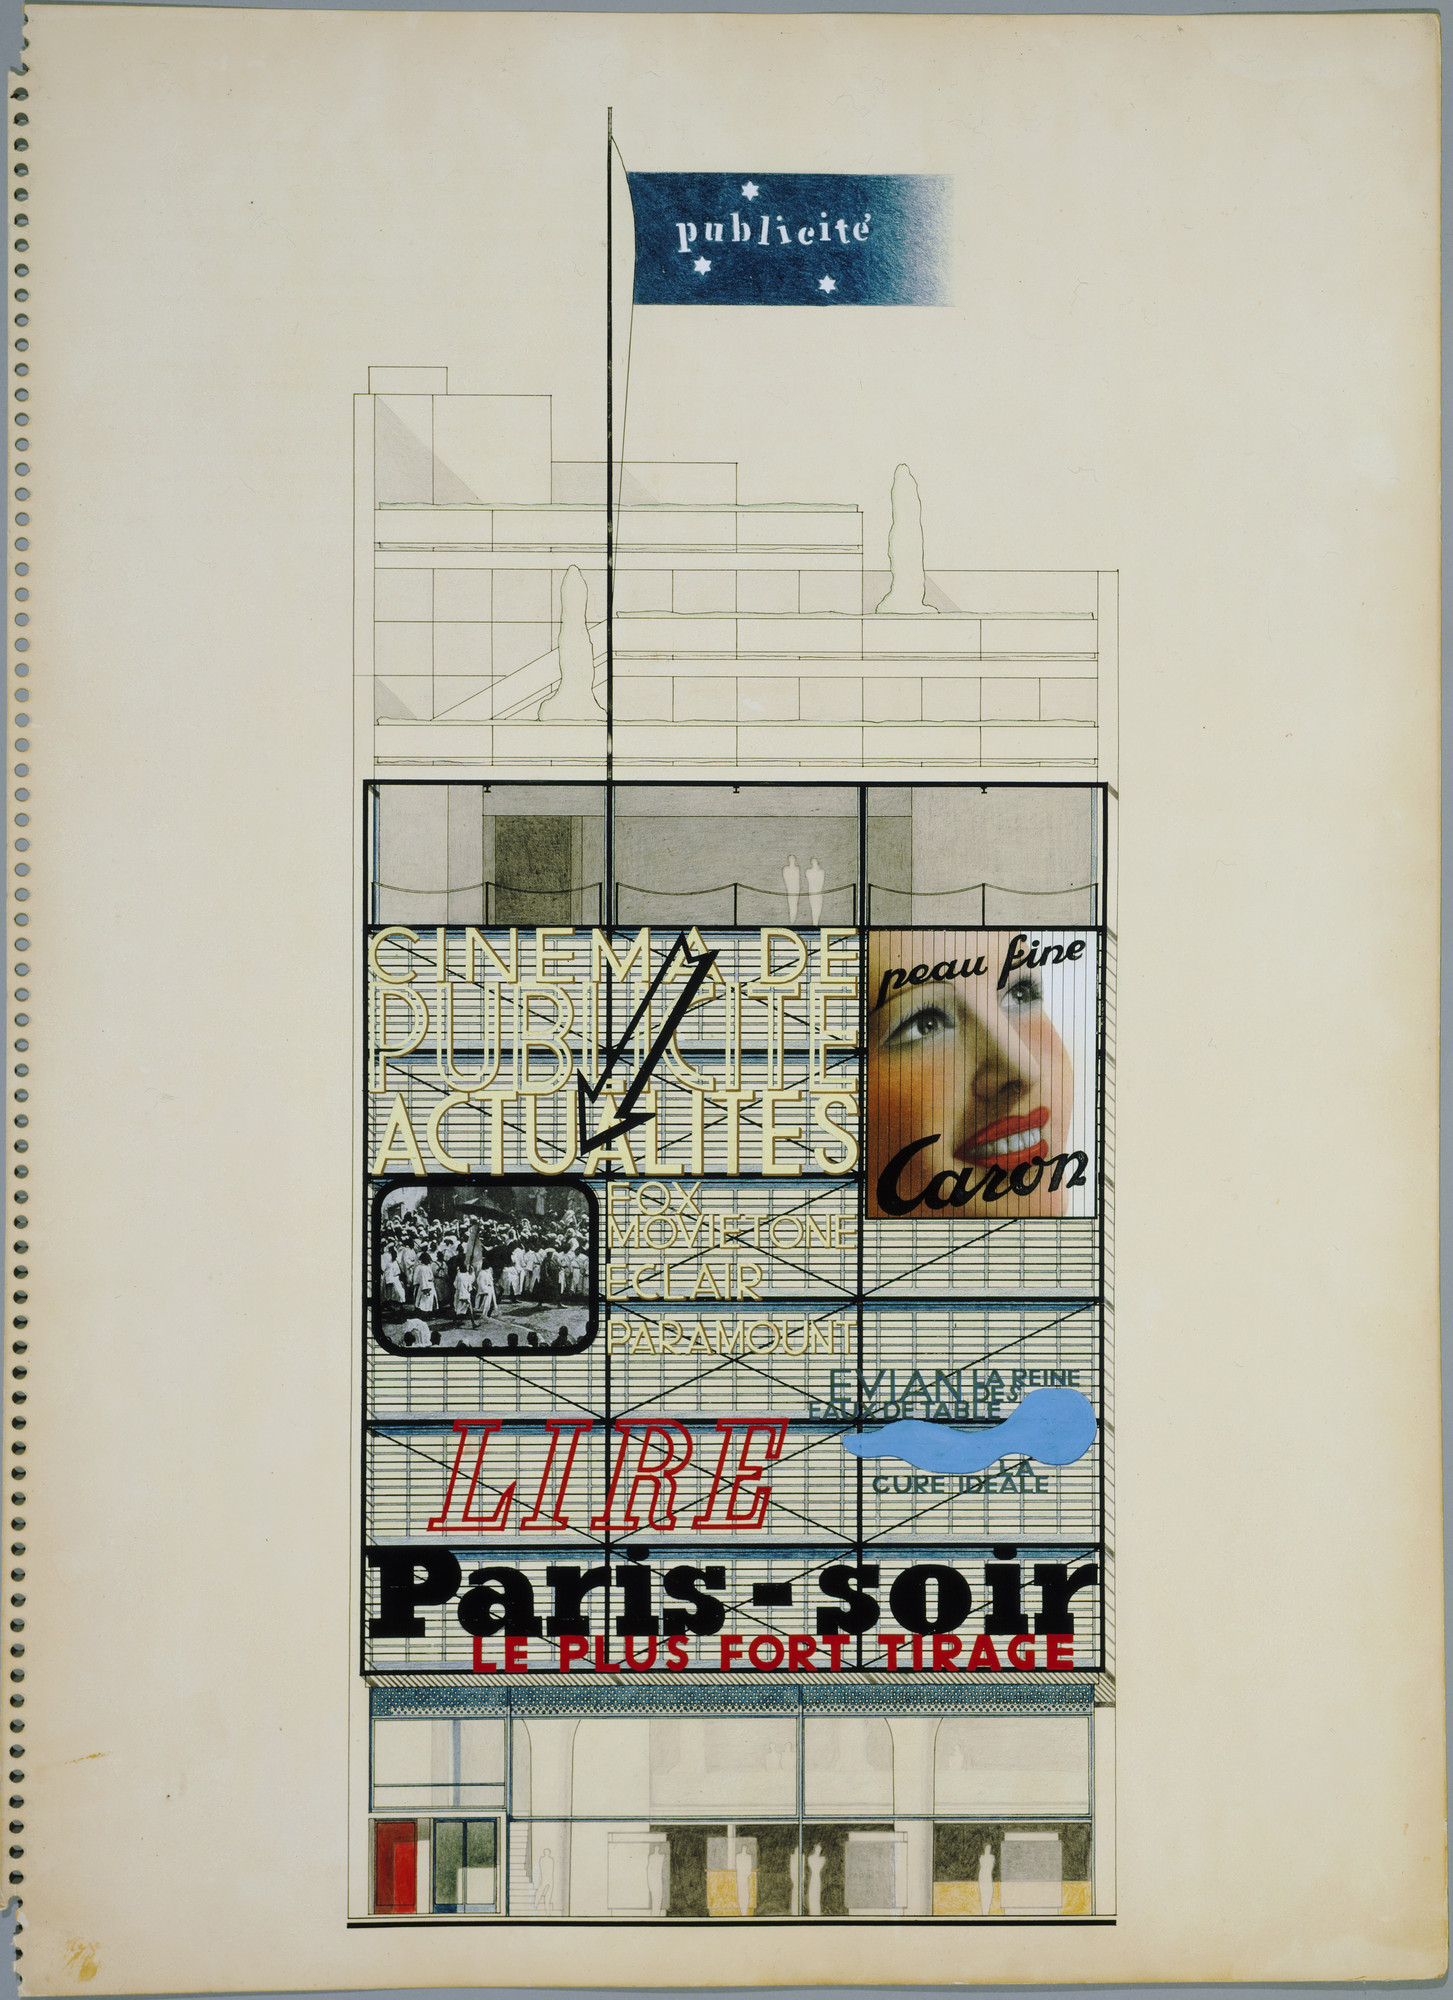 Oscar Nitzchke. Maison de la Publicité Project, Paris, France (Elevation). 1934-36